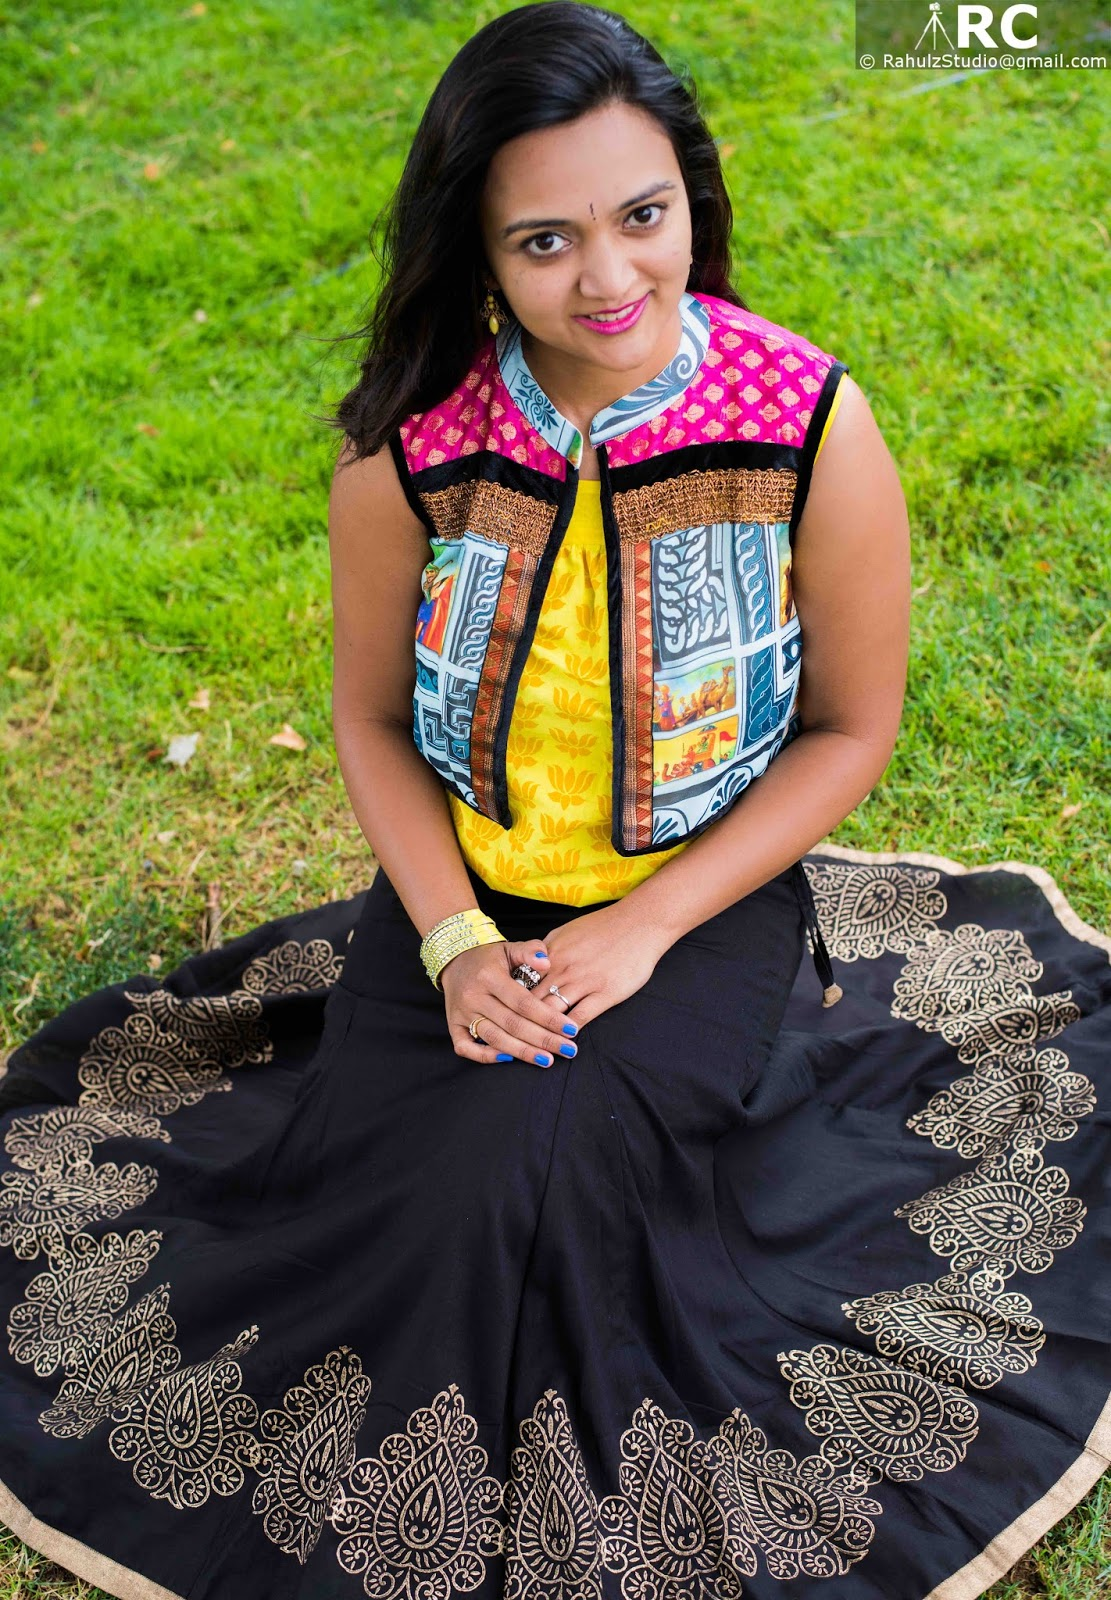 Long skirts for women, Kahini Kreative collection, Indo western looks, Seattle fashion blogger, Ananya in a skirt, printed ethnic vest with black skirt